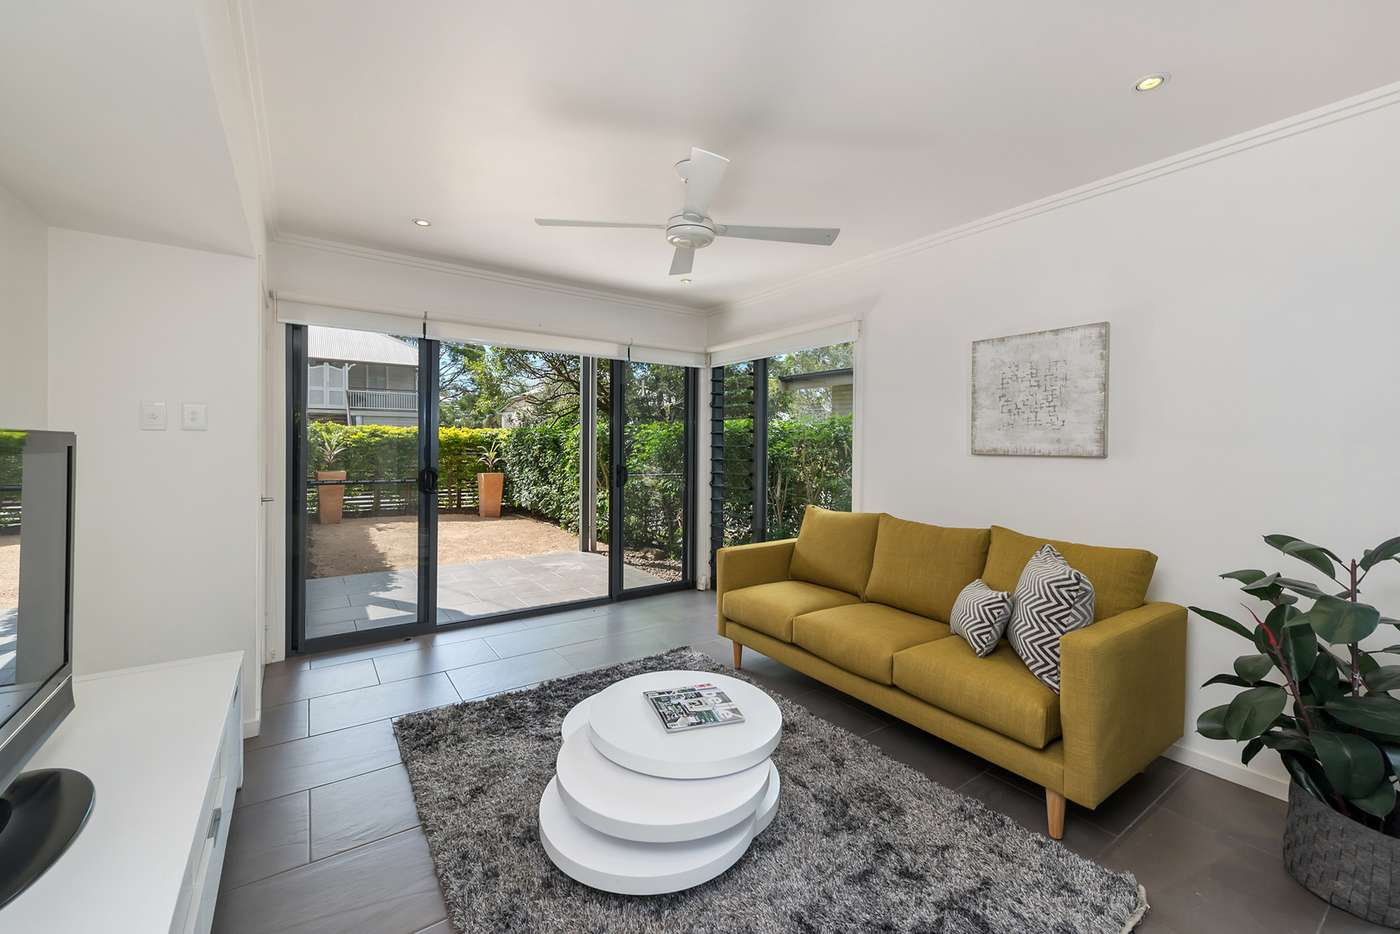 Fifth view of Homely house listing, 52 Farm Street, Newmarket QLD 4051